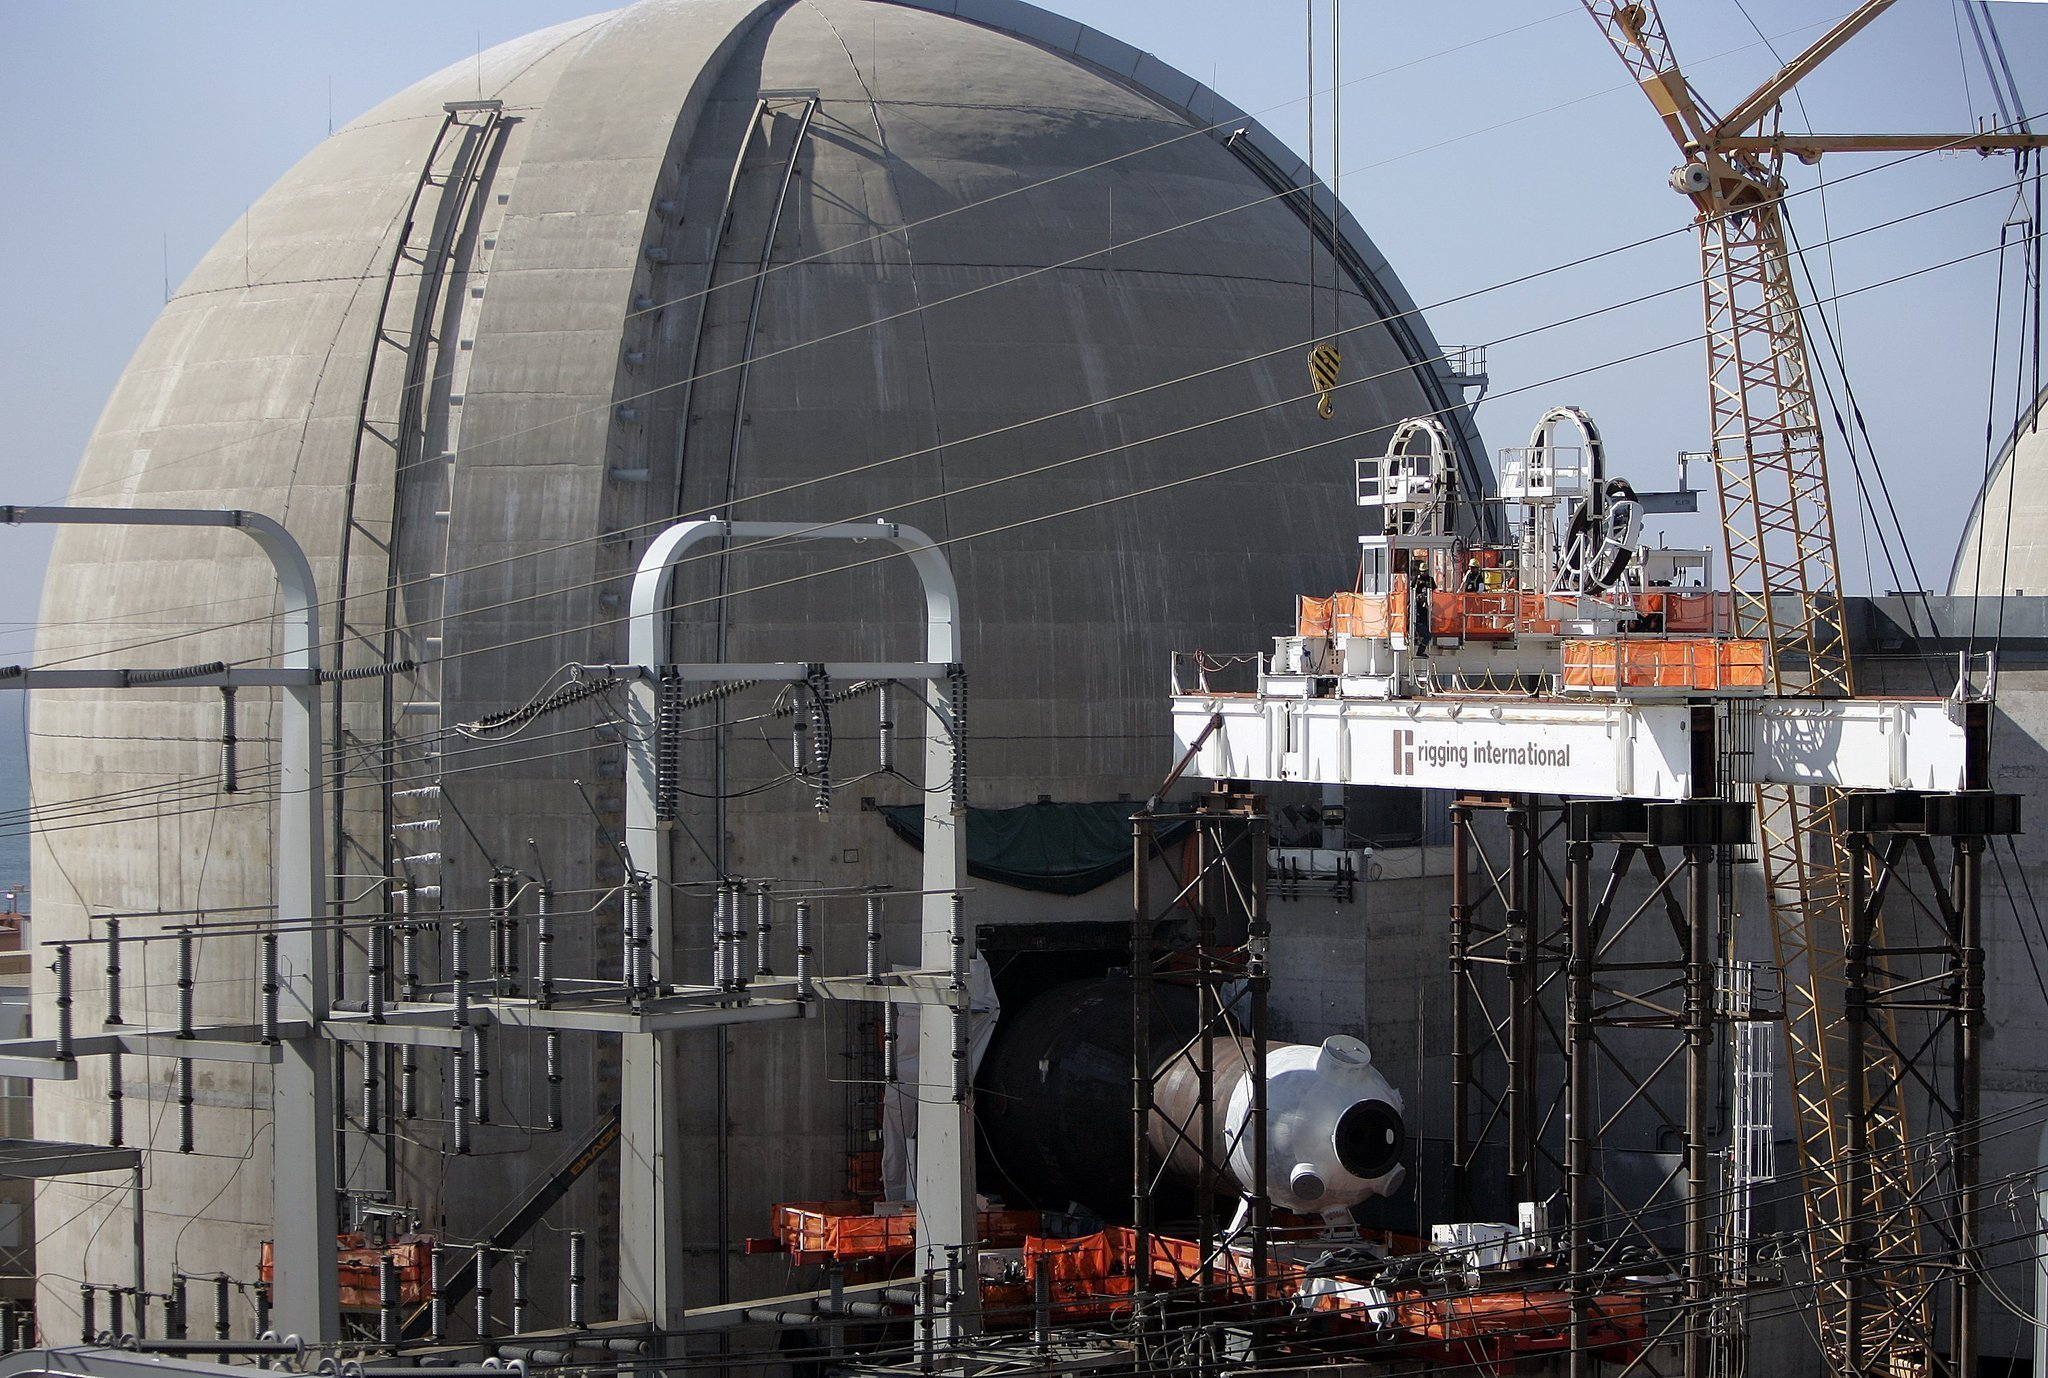 Steam generator replacement ahead of schedule The San Diego